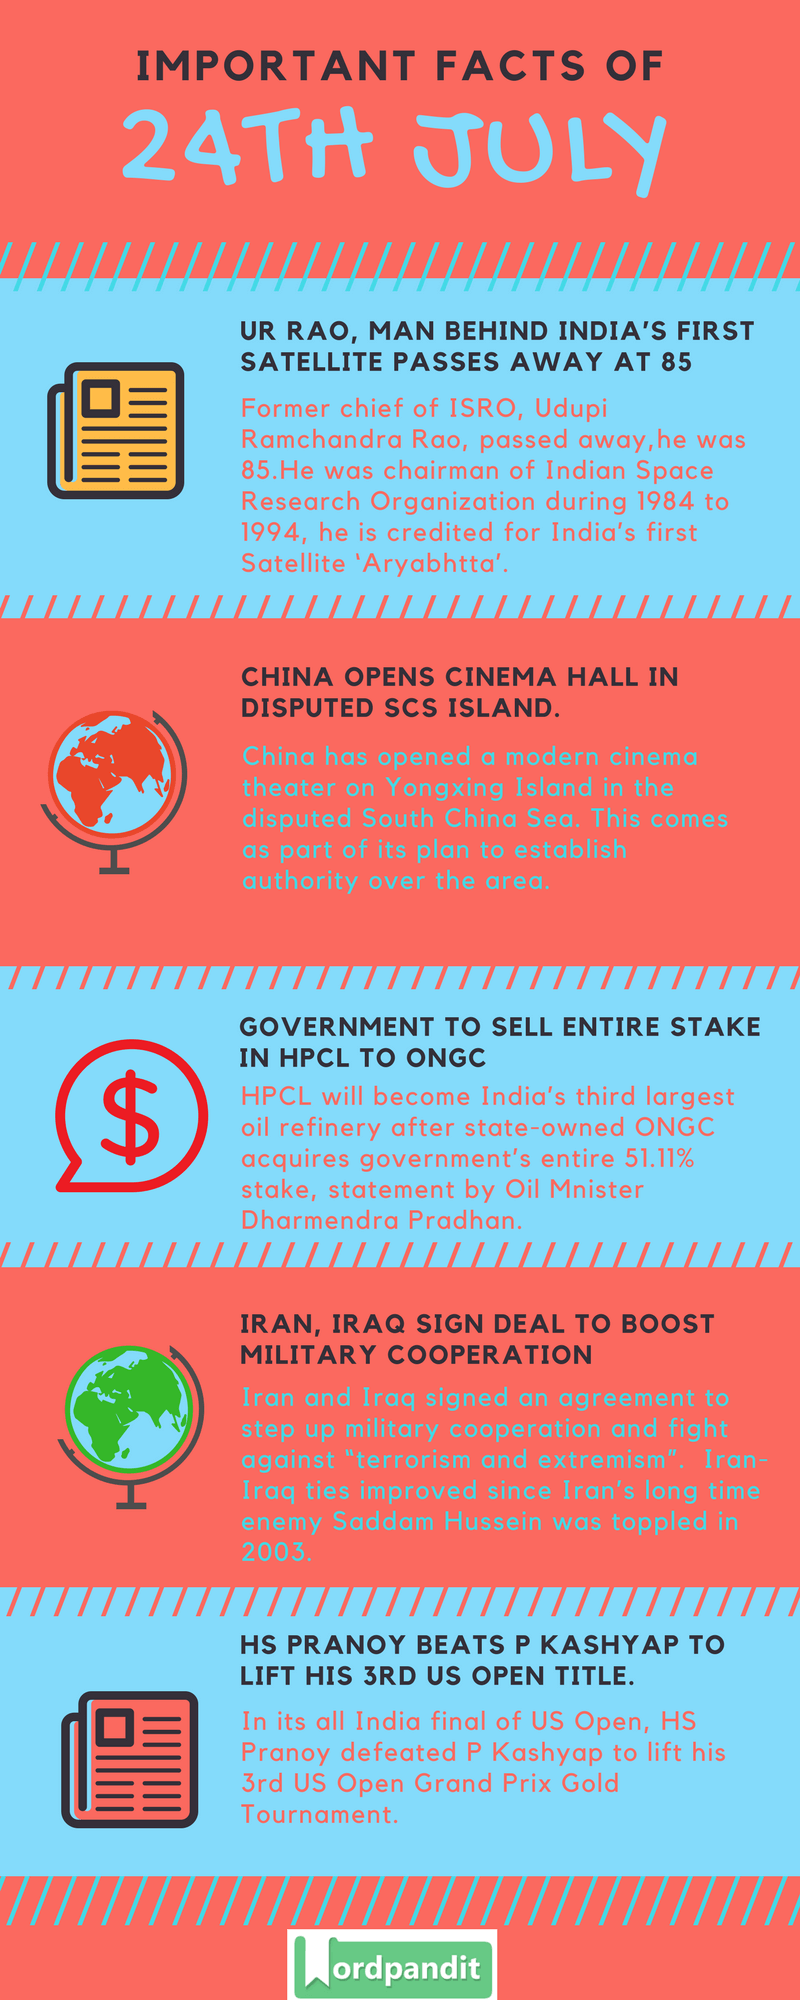 Daily-Current-Affairs-24-july-2017-Current-Affairs-Quiz-july-24-2017-Current-Affairs-Infographic